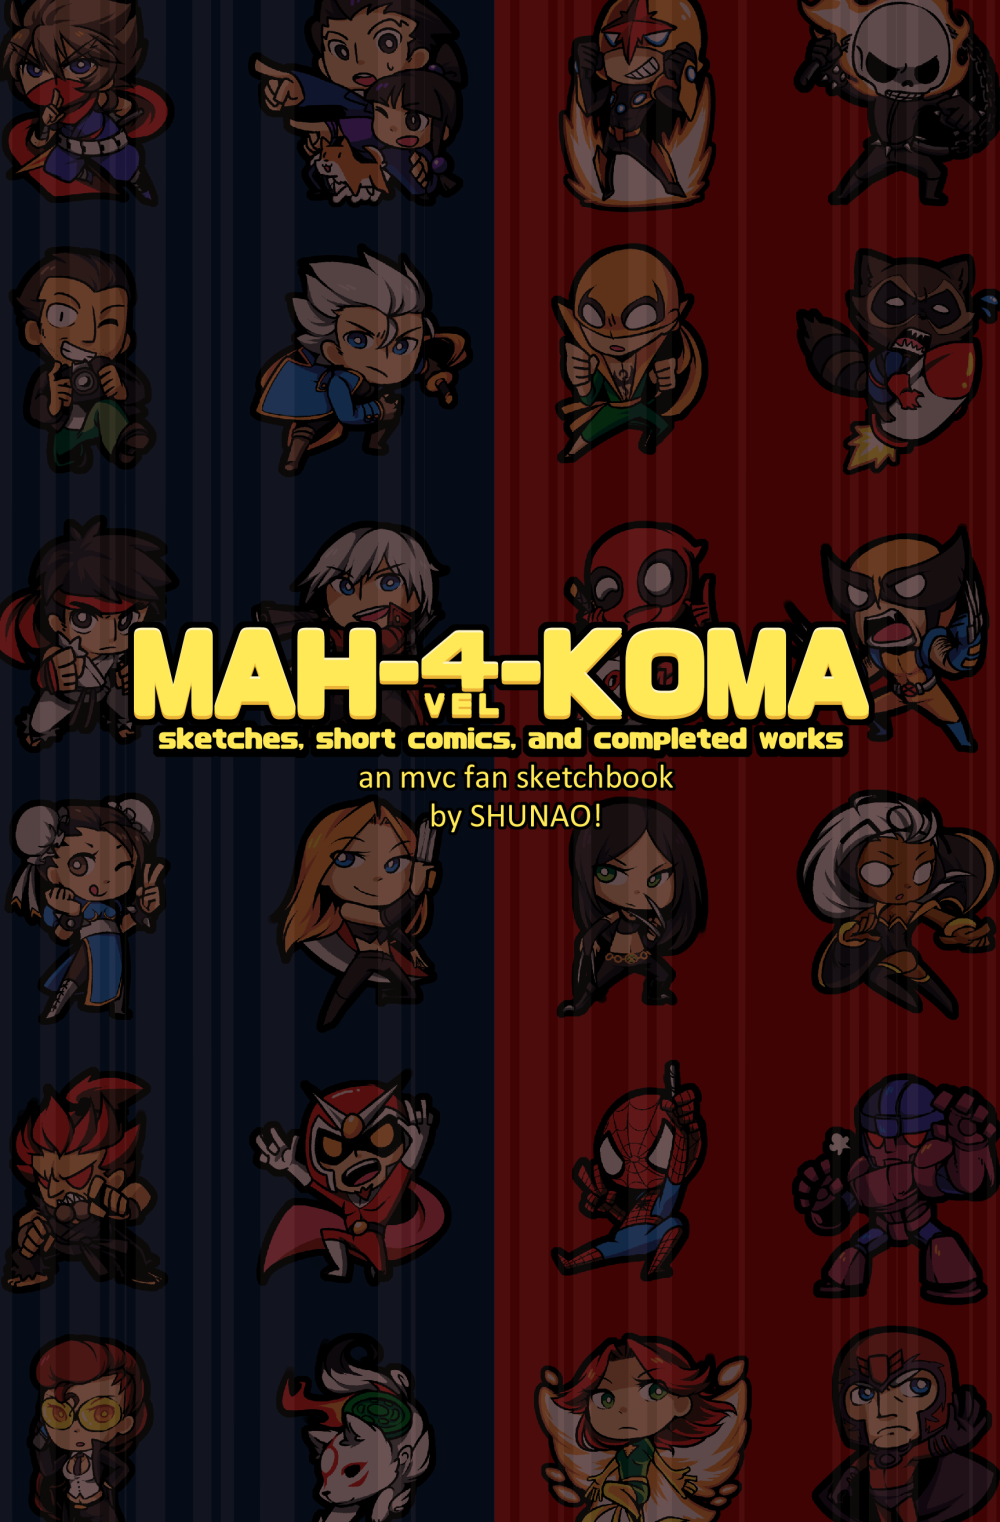 frontcover-s.png